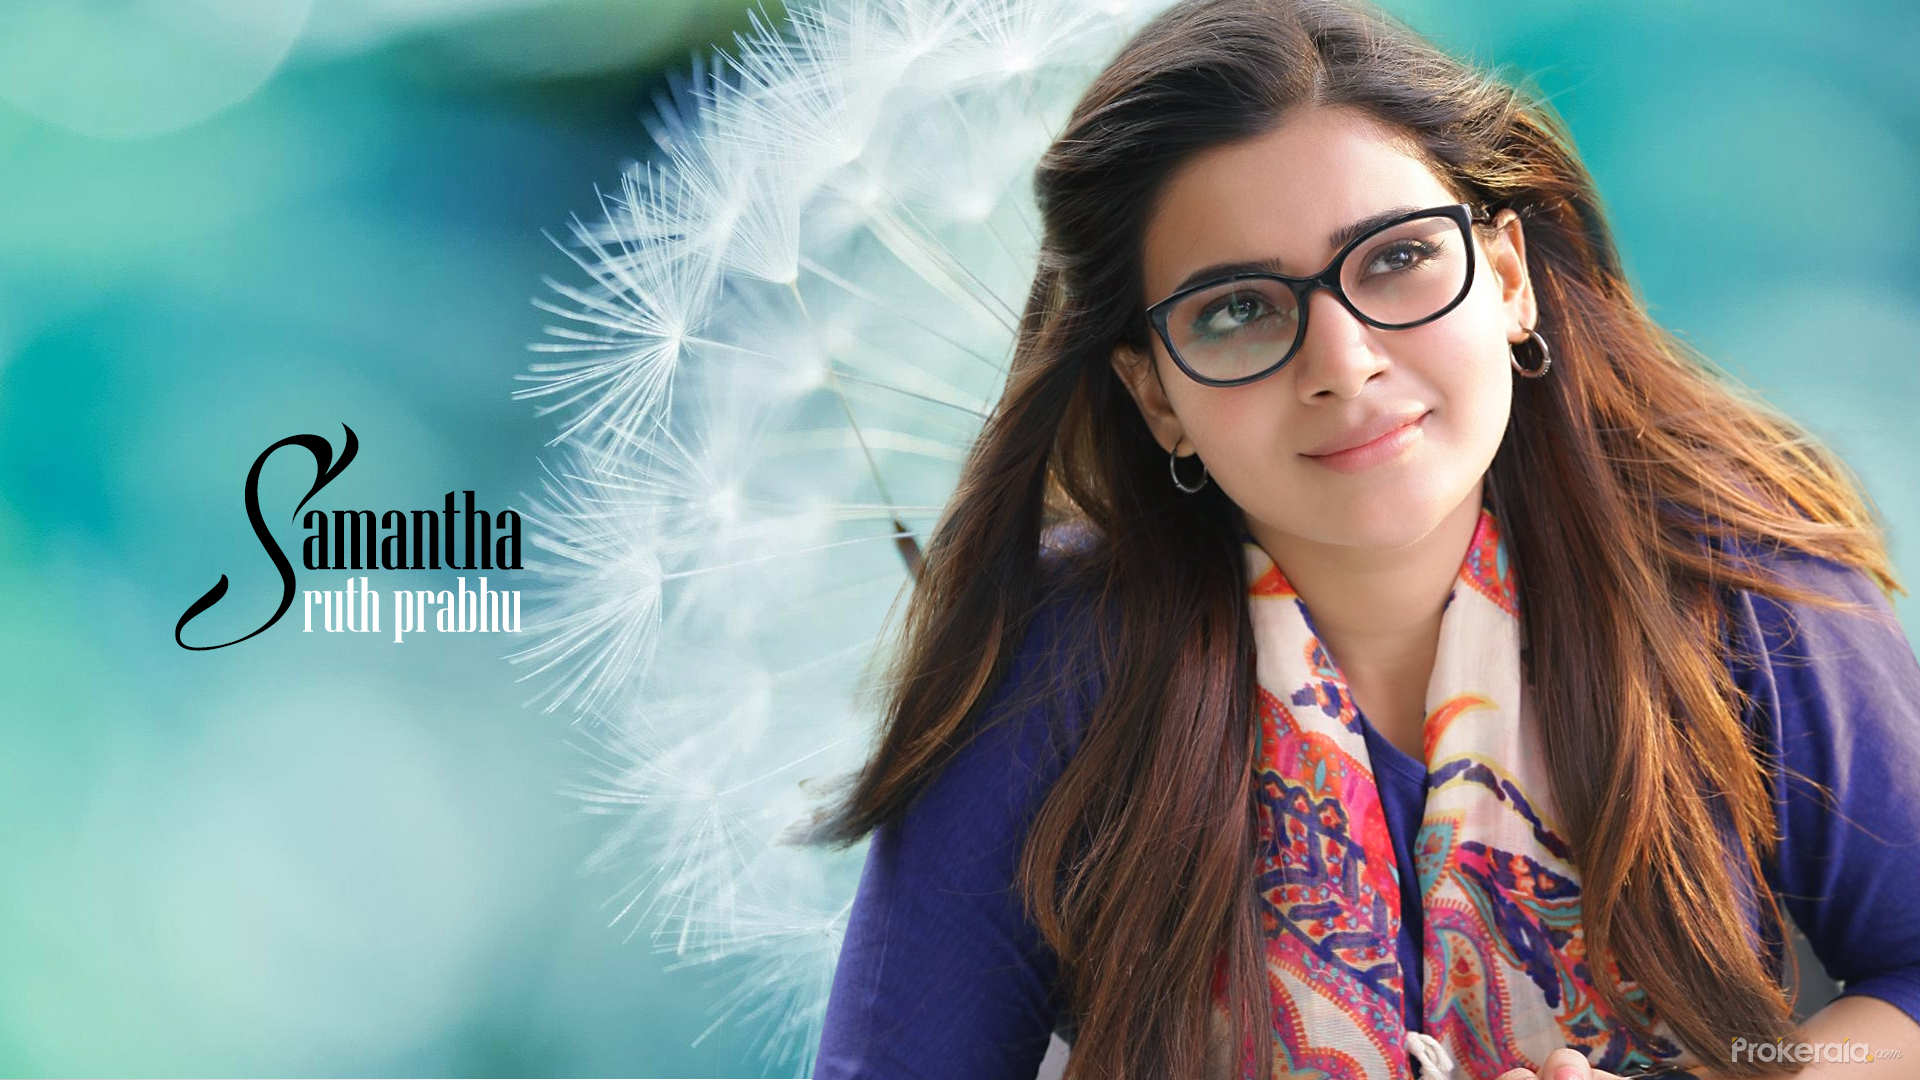 download samantha ruth prabhu wallpaper # 2 | hd samantha ruth